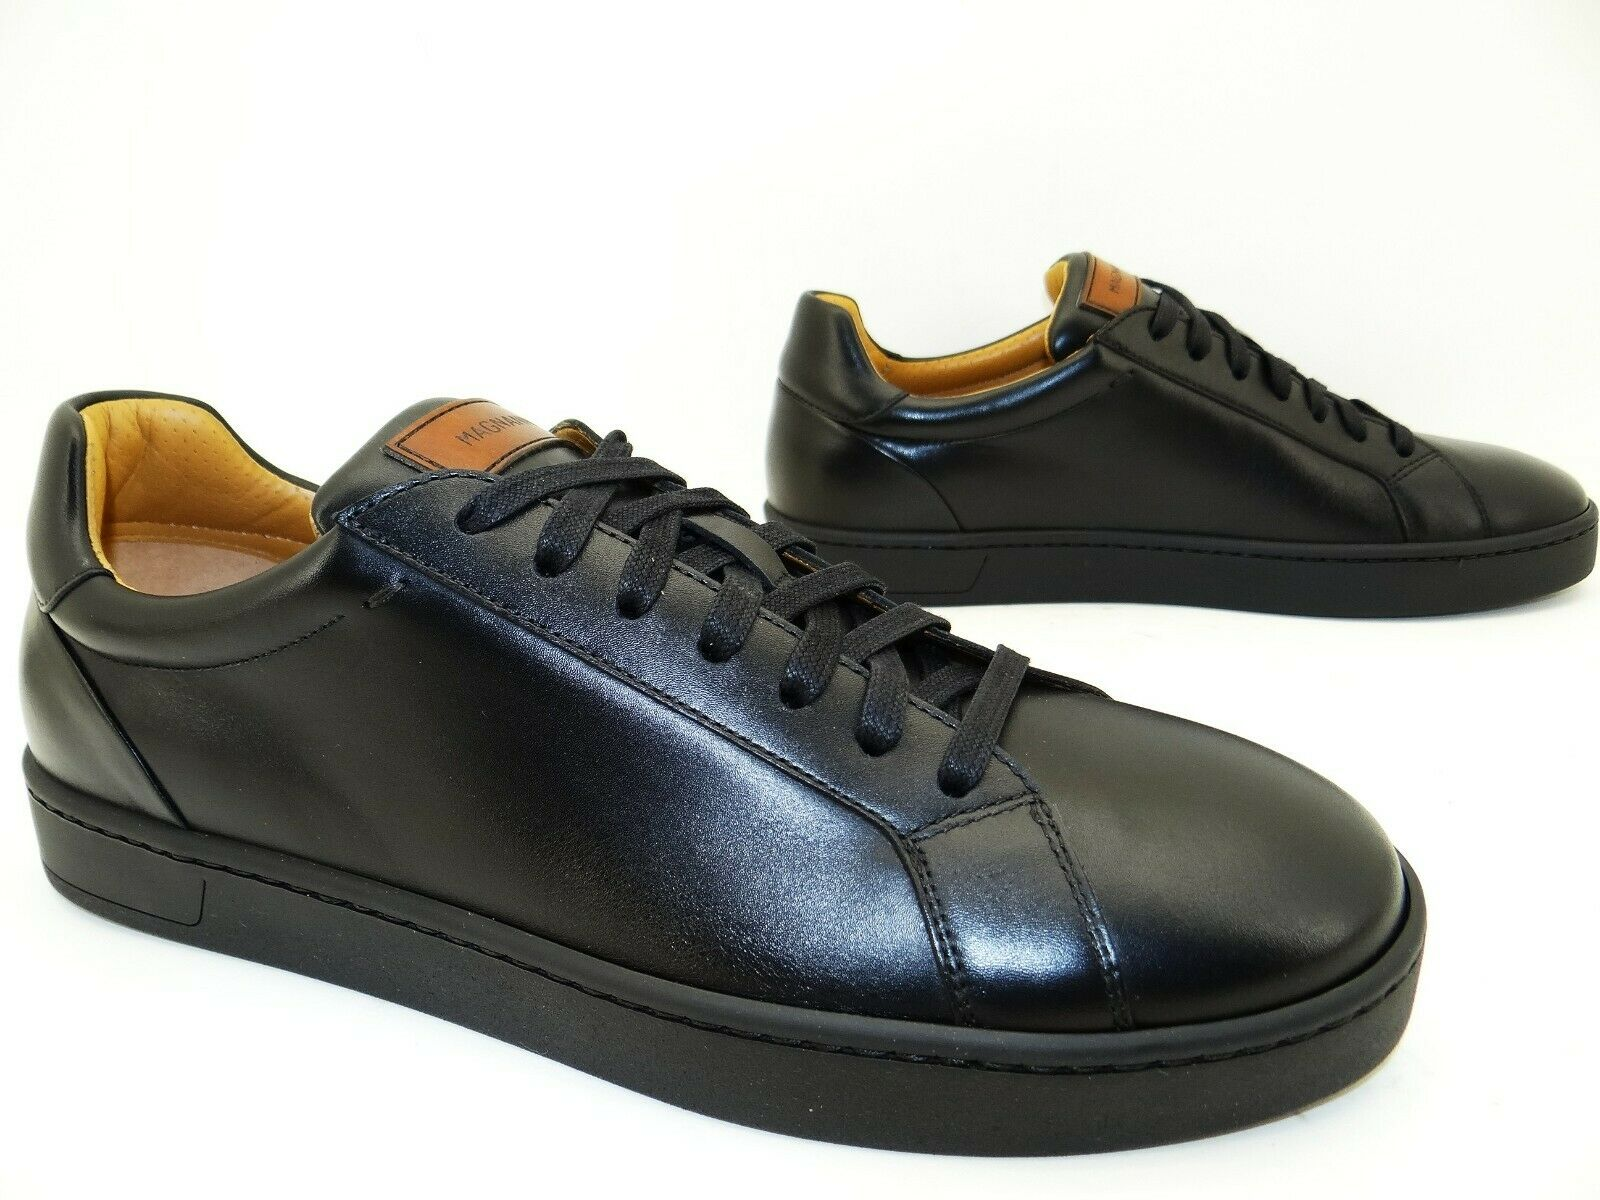 Magnanni Osaka Sneaker Lace Up Shoes Running Shoes Thurn Mens Leather Size 42 Black